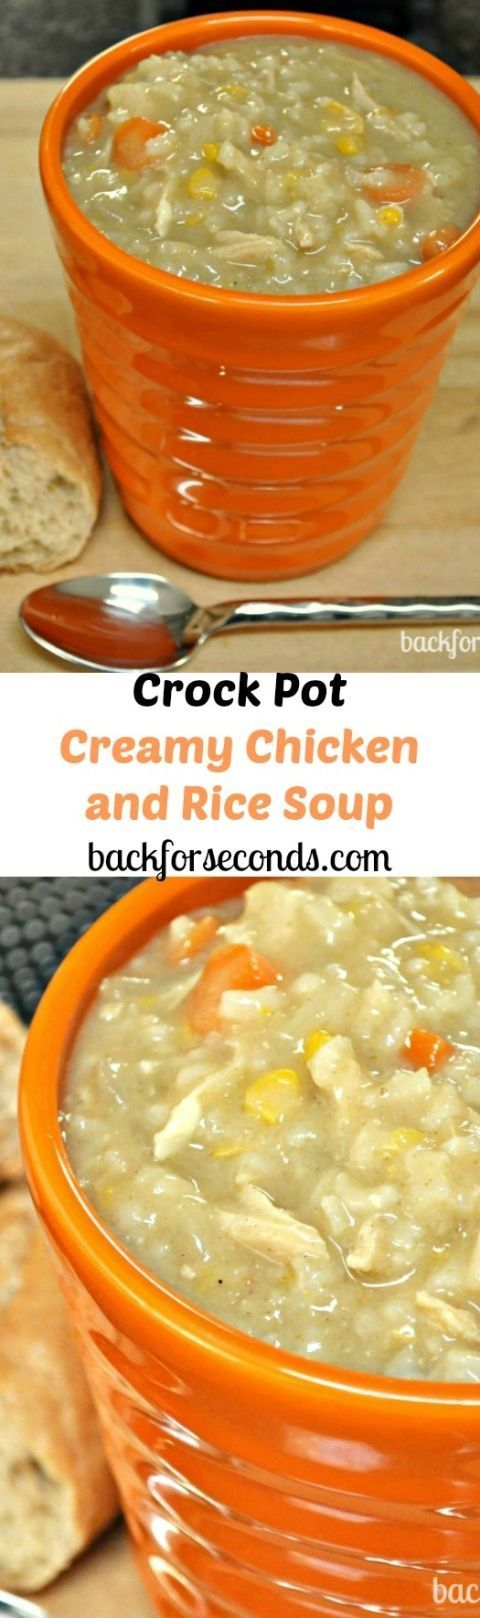 Chicken and Rice Soup Recipe made in the Crock Pot will need to use gluten free flour and coconut milk to make gluten/dairy free